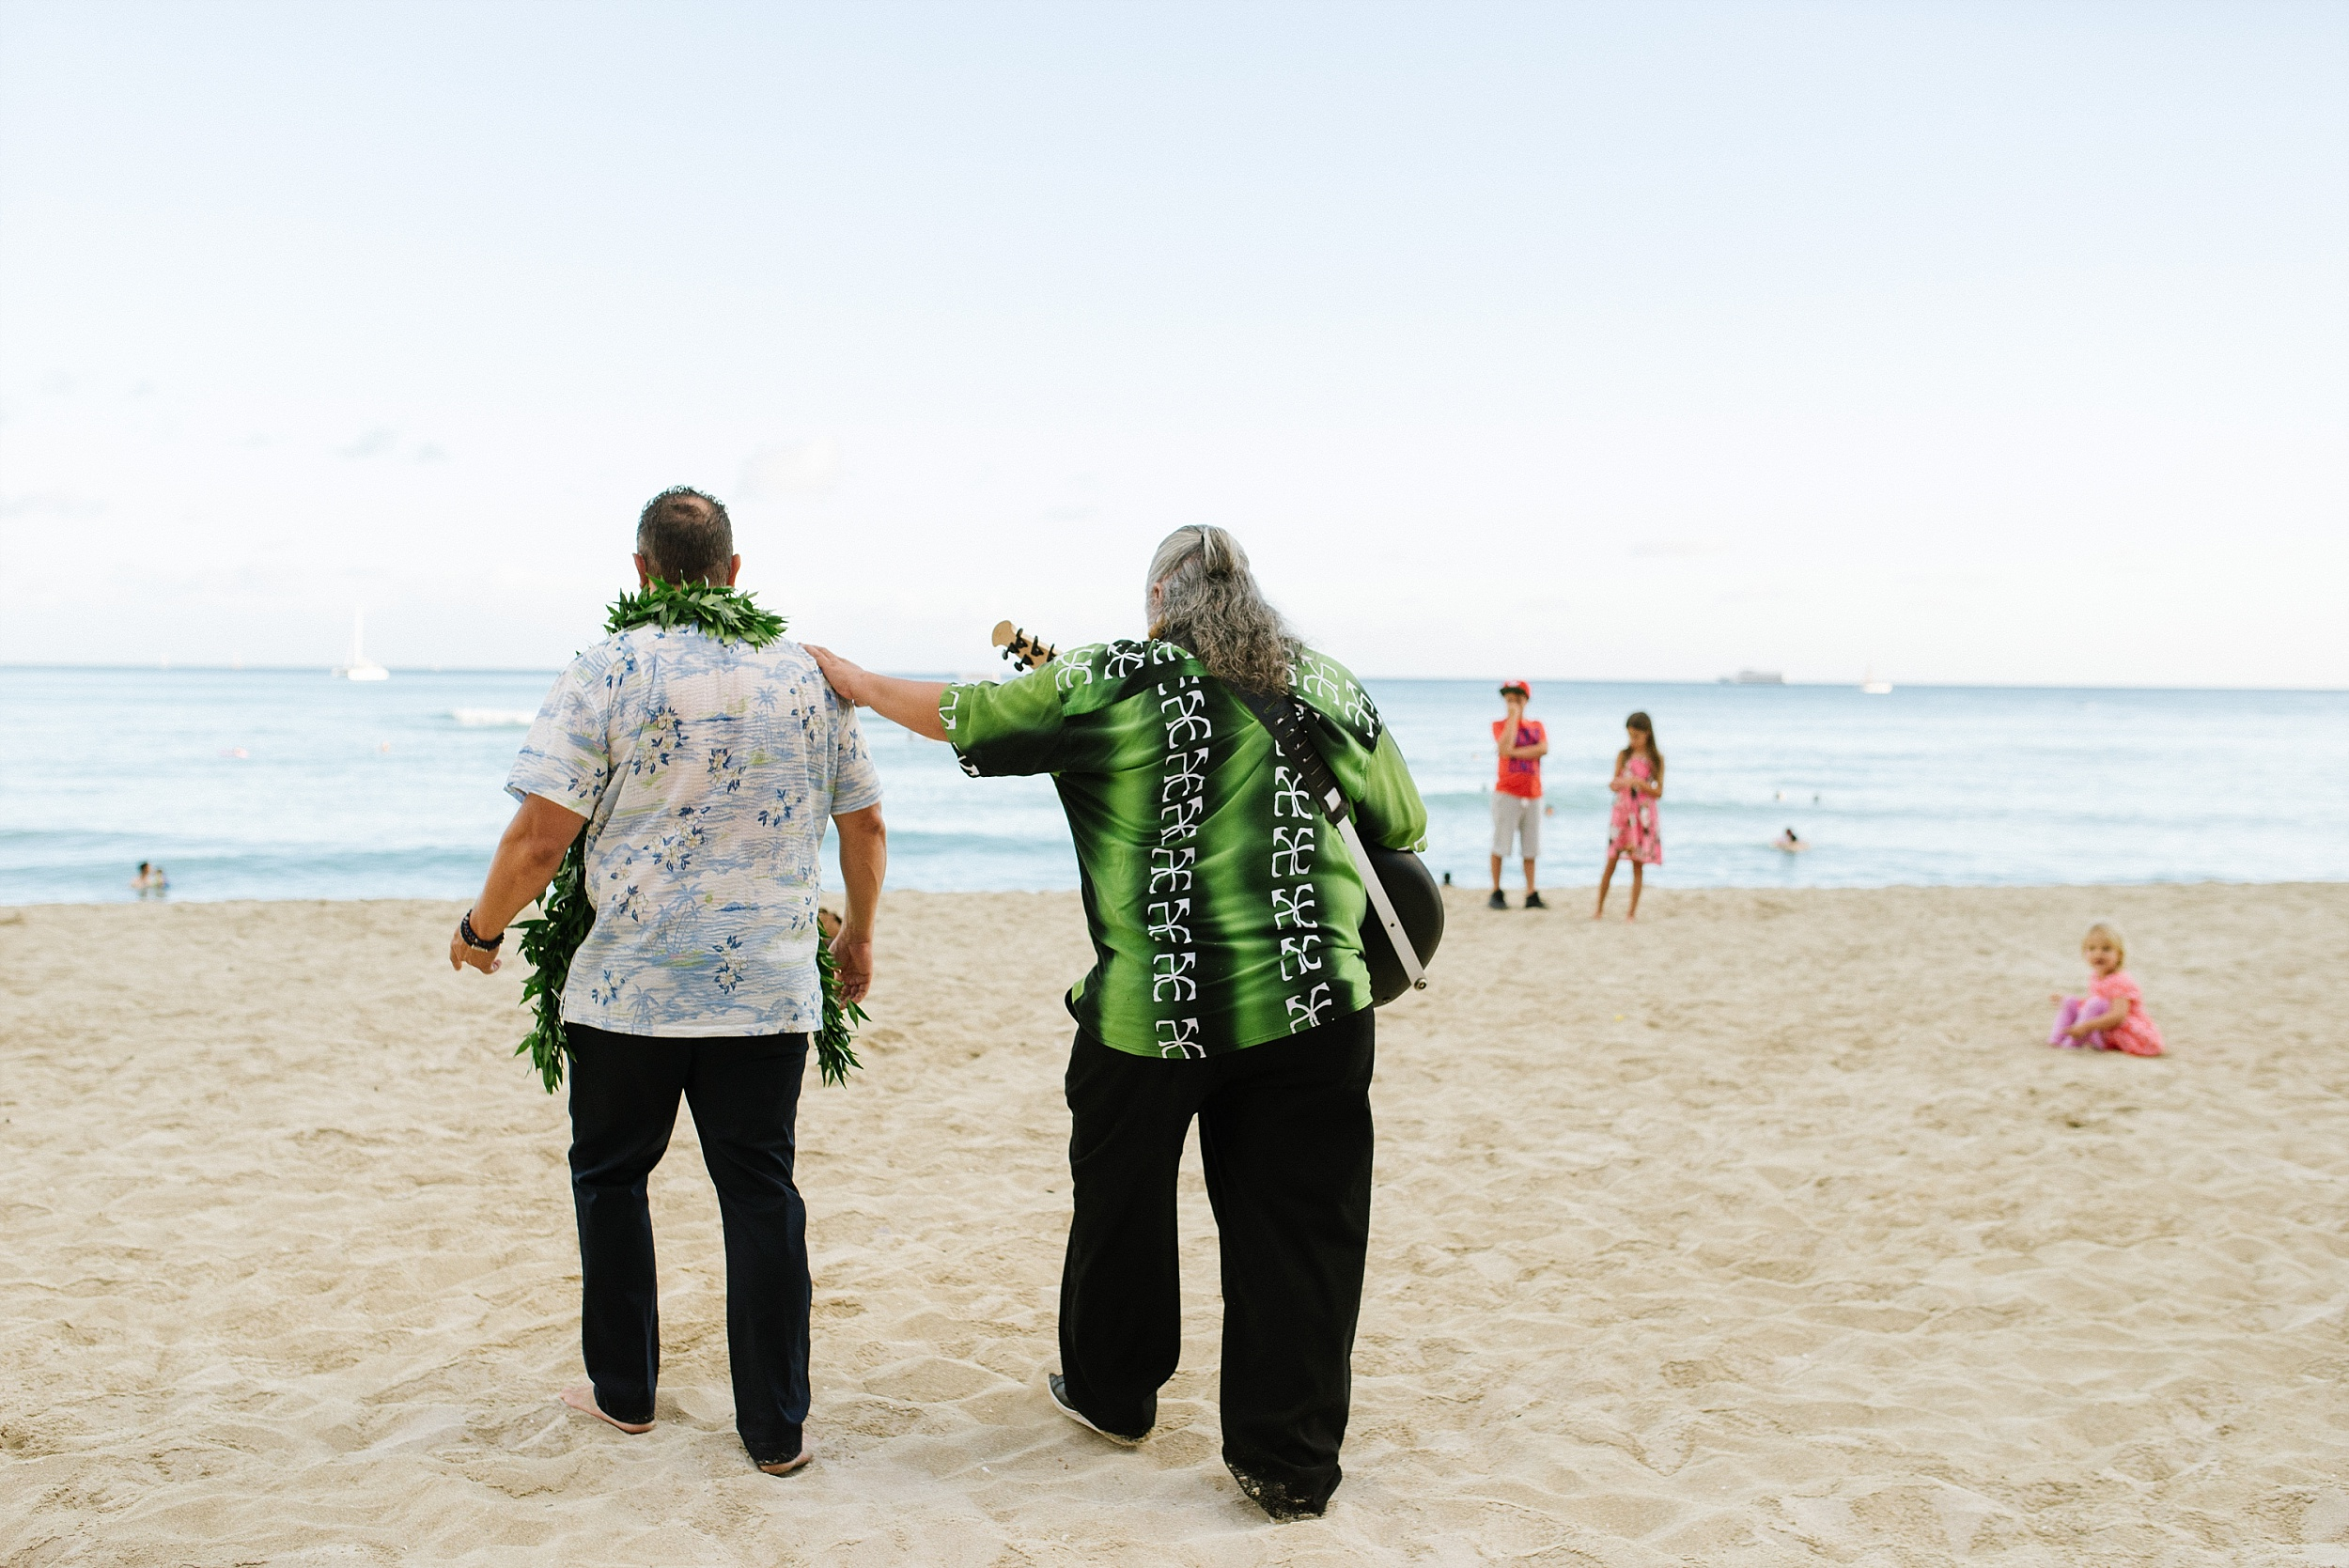 hawaii_oahu_beach_wedding_chelseadierphotography_0017.jpg